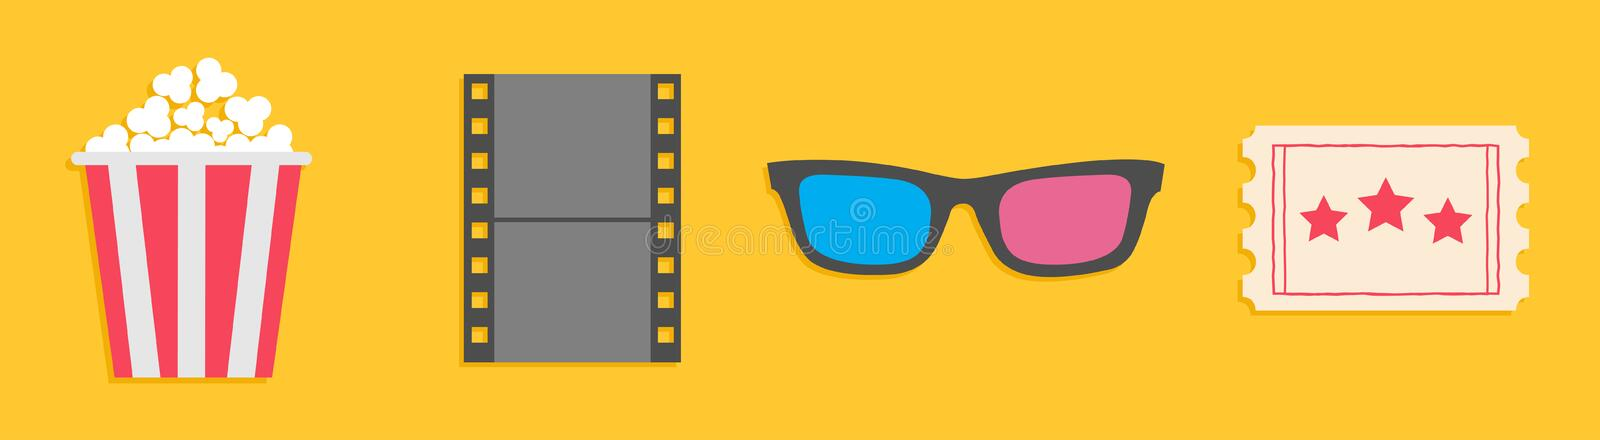 3D glasses, ticket, popcorn, film. Movie cinema icon set line. Flat design style. Yellow background Isolated stock illustration